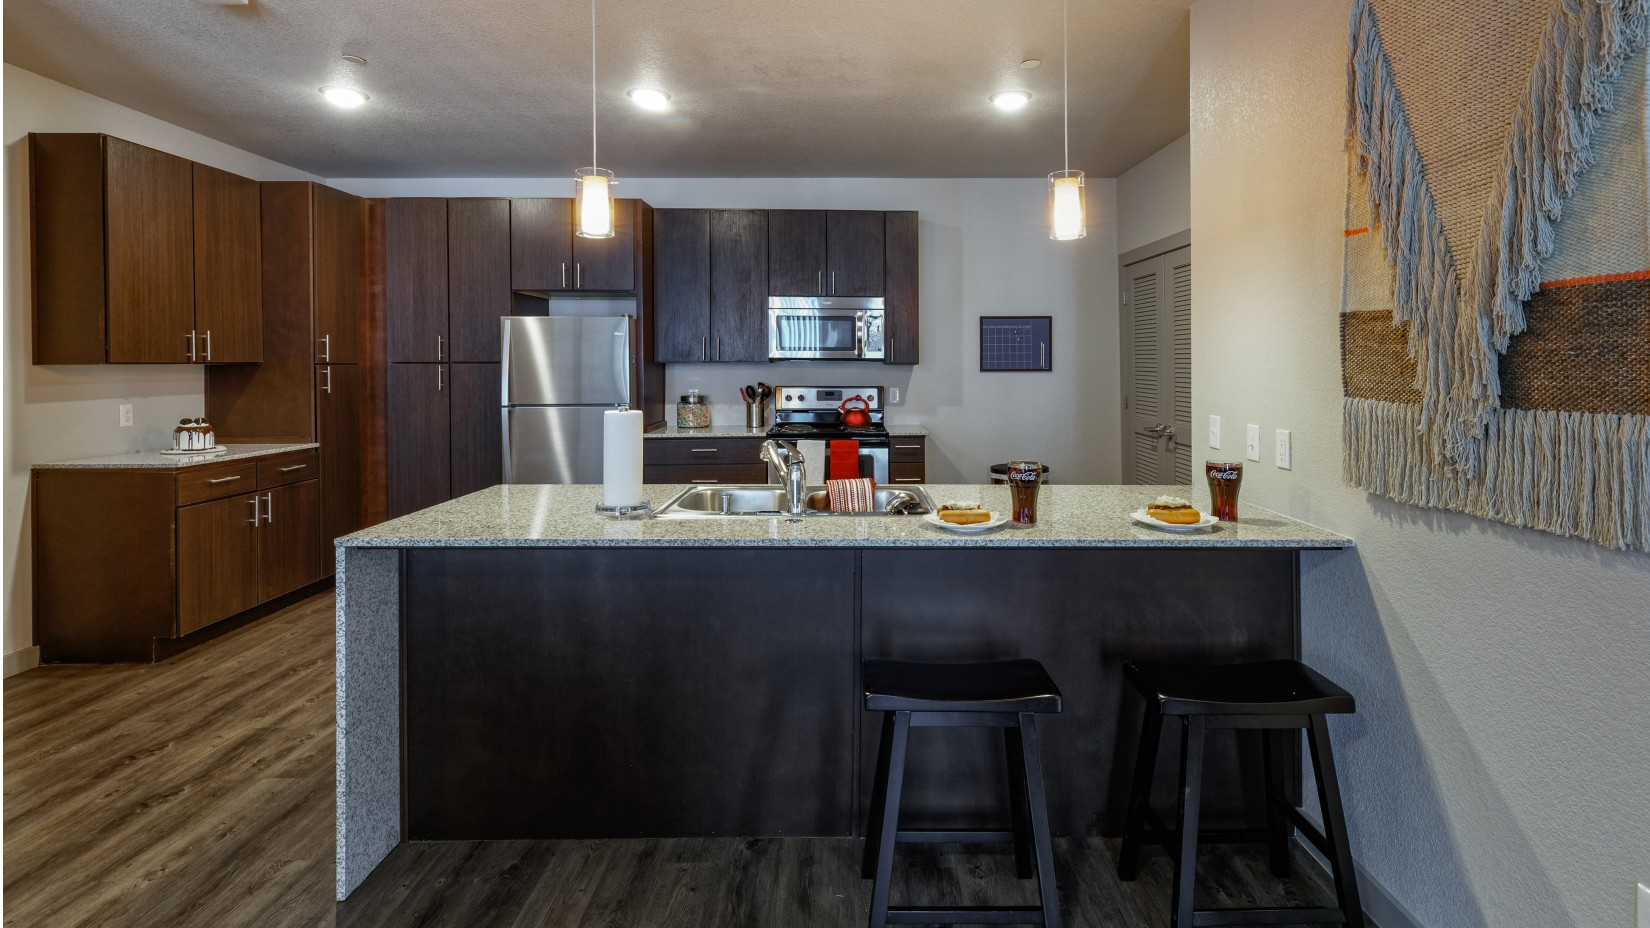 Kitchen | Apartments in Fayetteville AR | Atmosphere Apartments